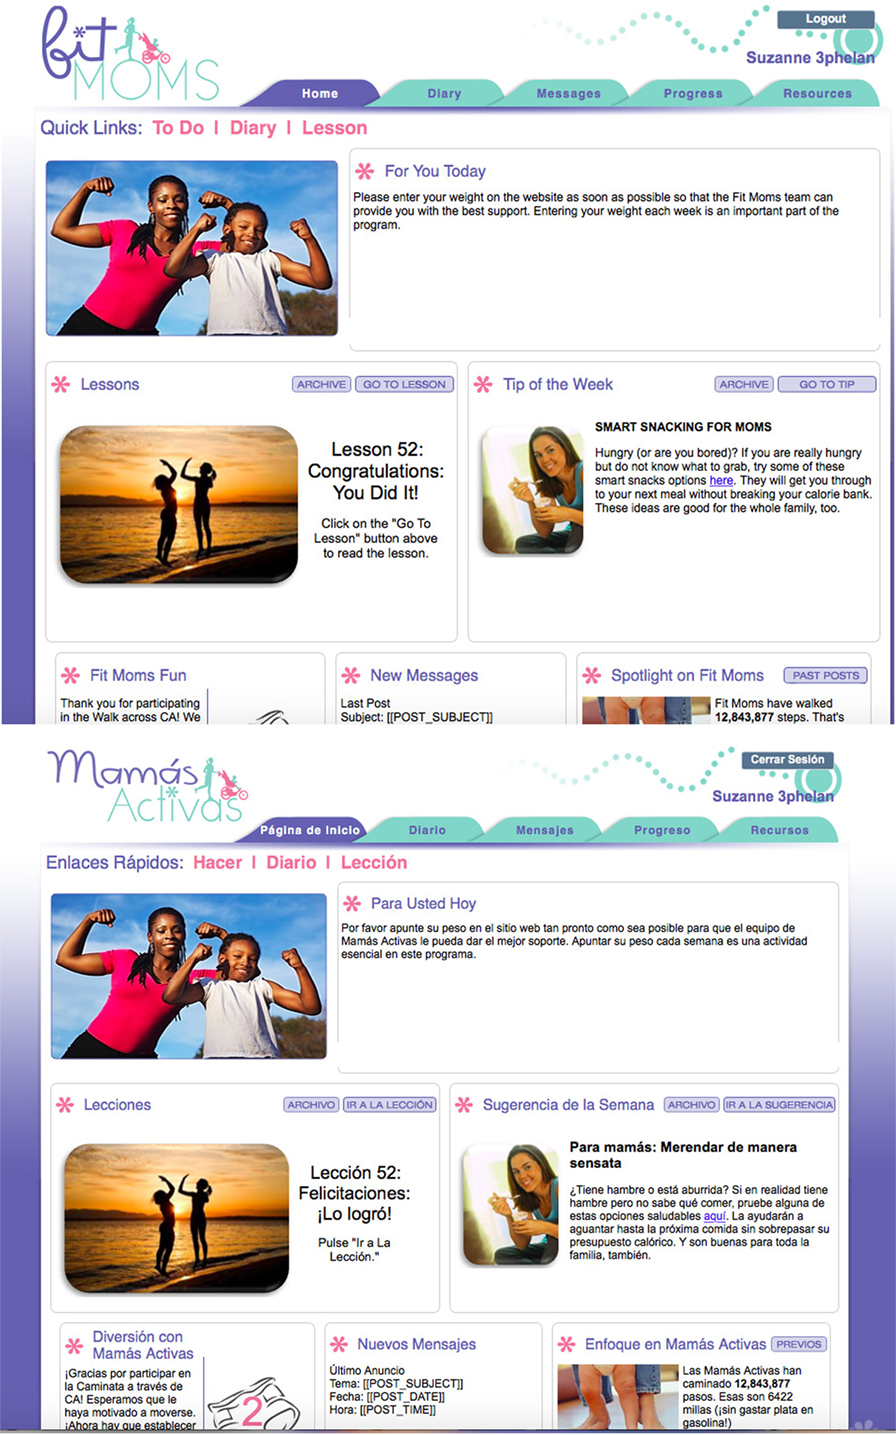 Figure 2 - Fit Moms/Mamas Activas webpages were available in Spanish and English.